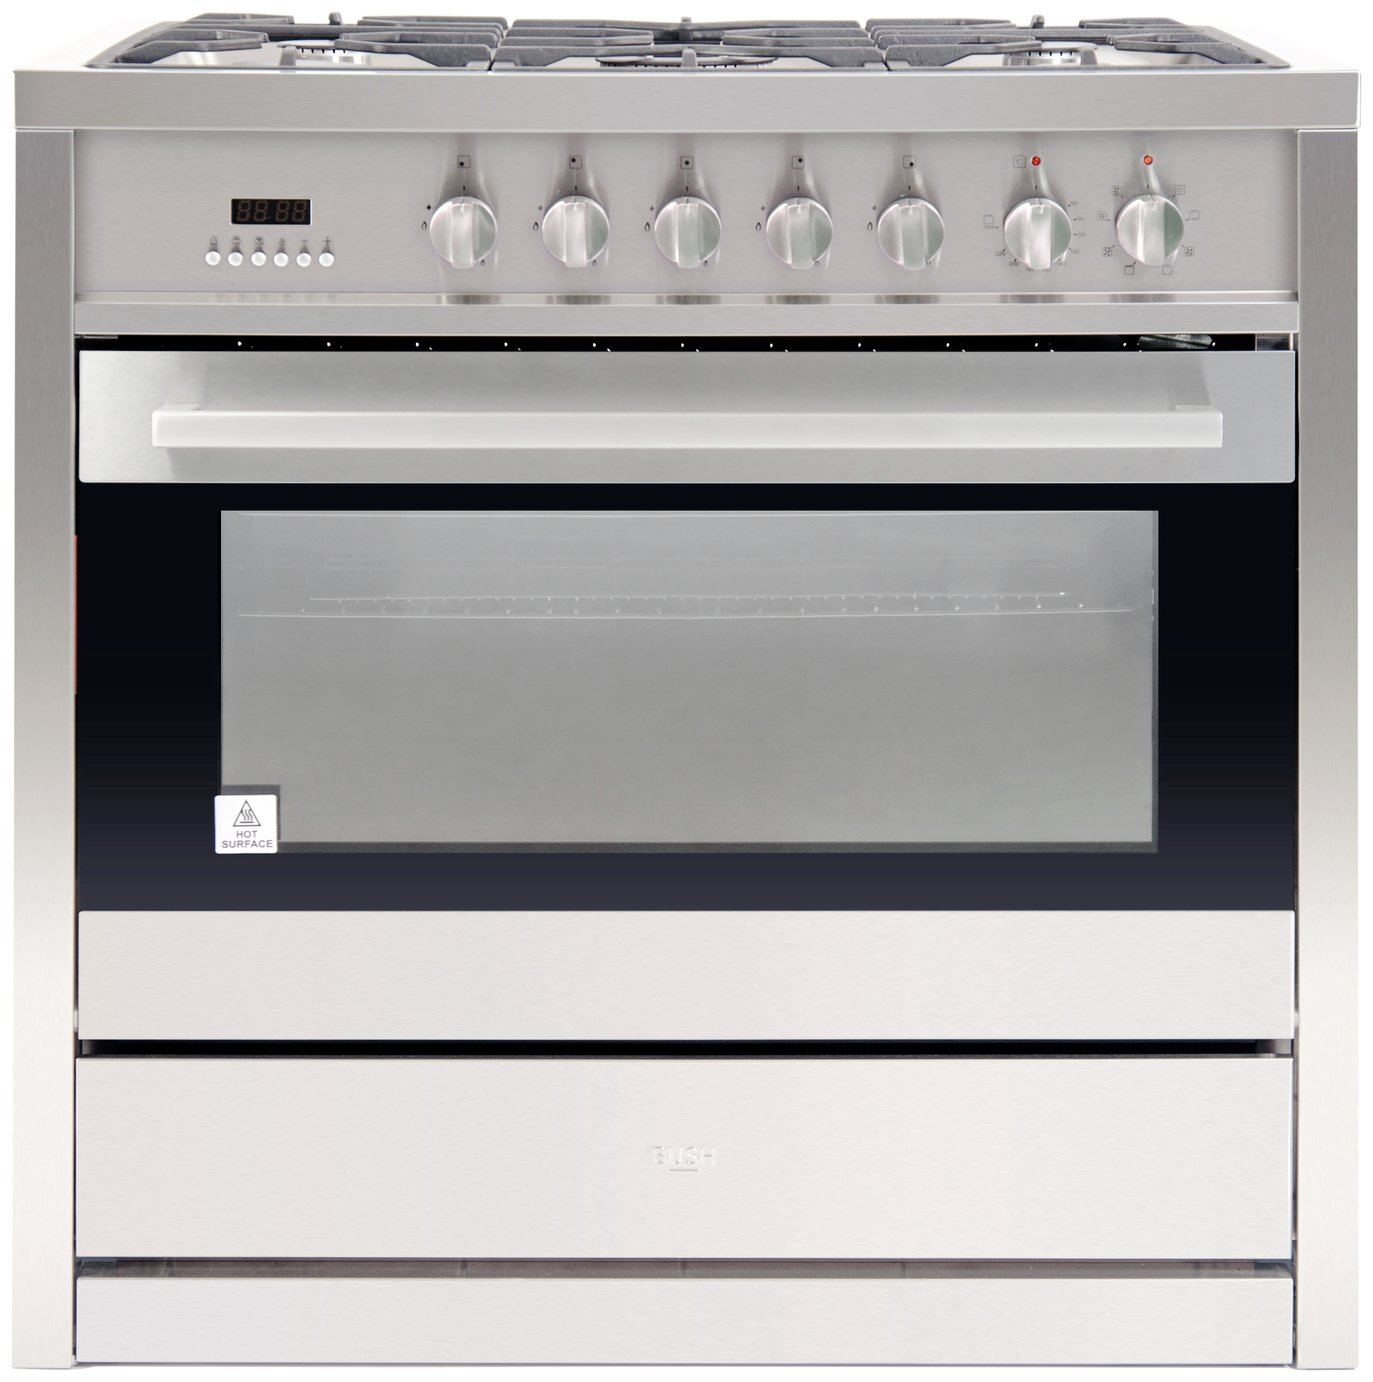 Image of Bush BRCNB90SPSS Dual Fuel Range Cooker - S/ Steel